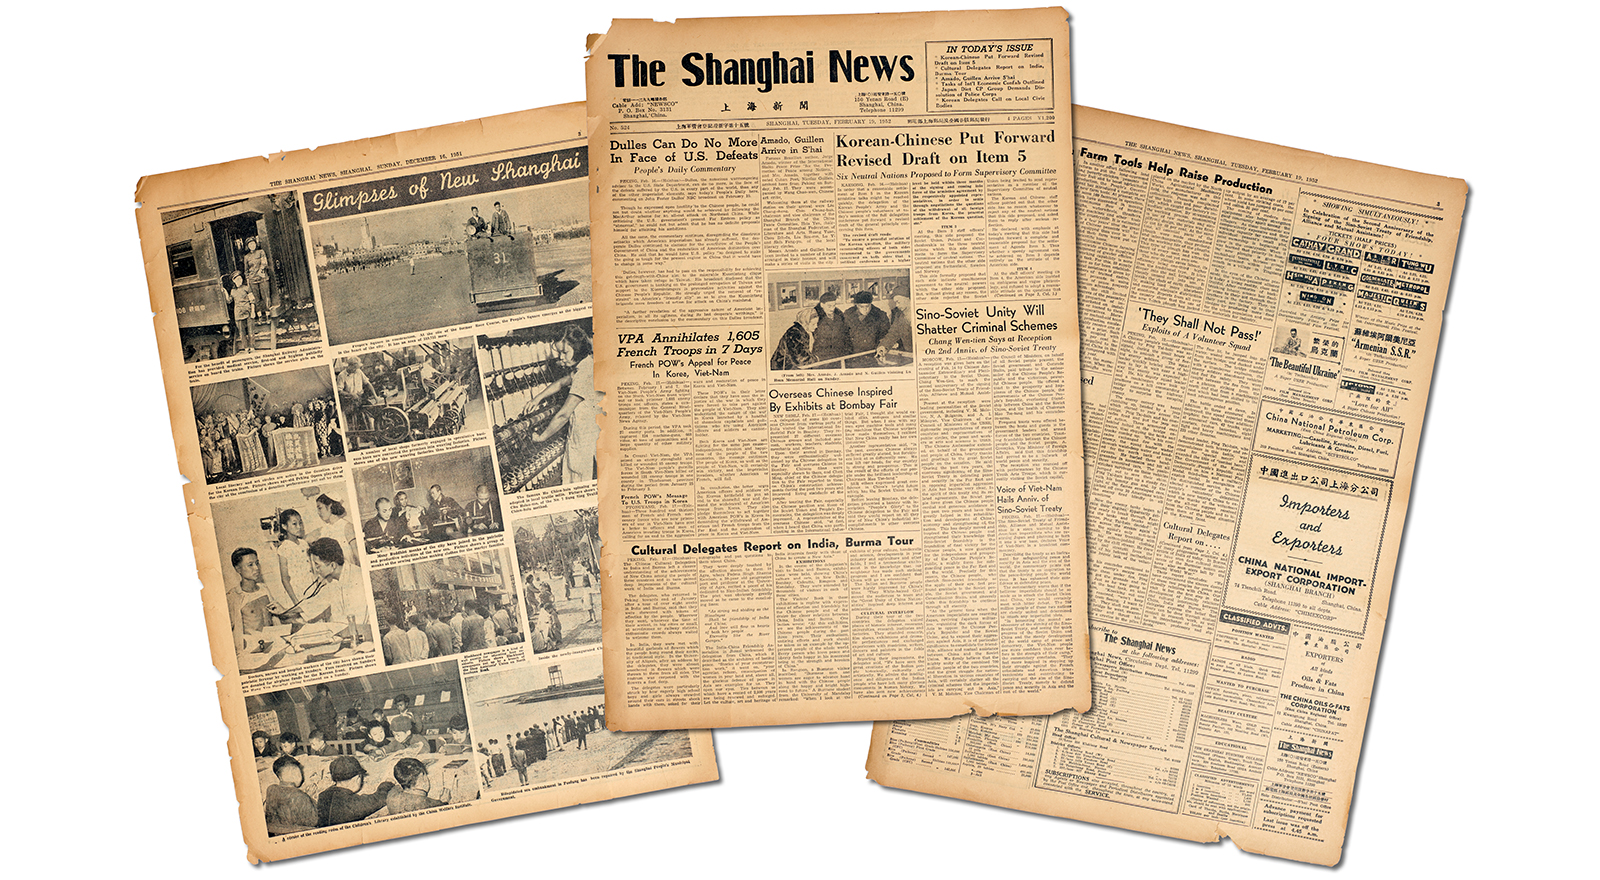 The Shanghai News ran from 1950 to 1952. (Jason Hornick for Foreign Policy)